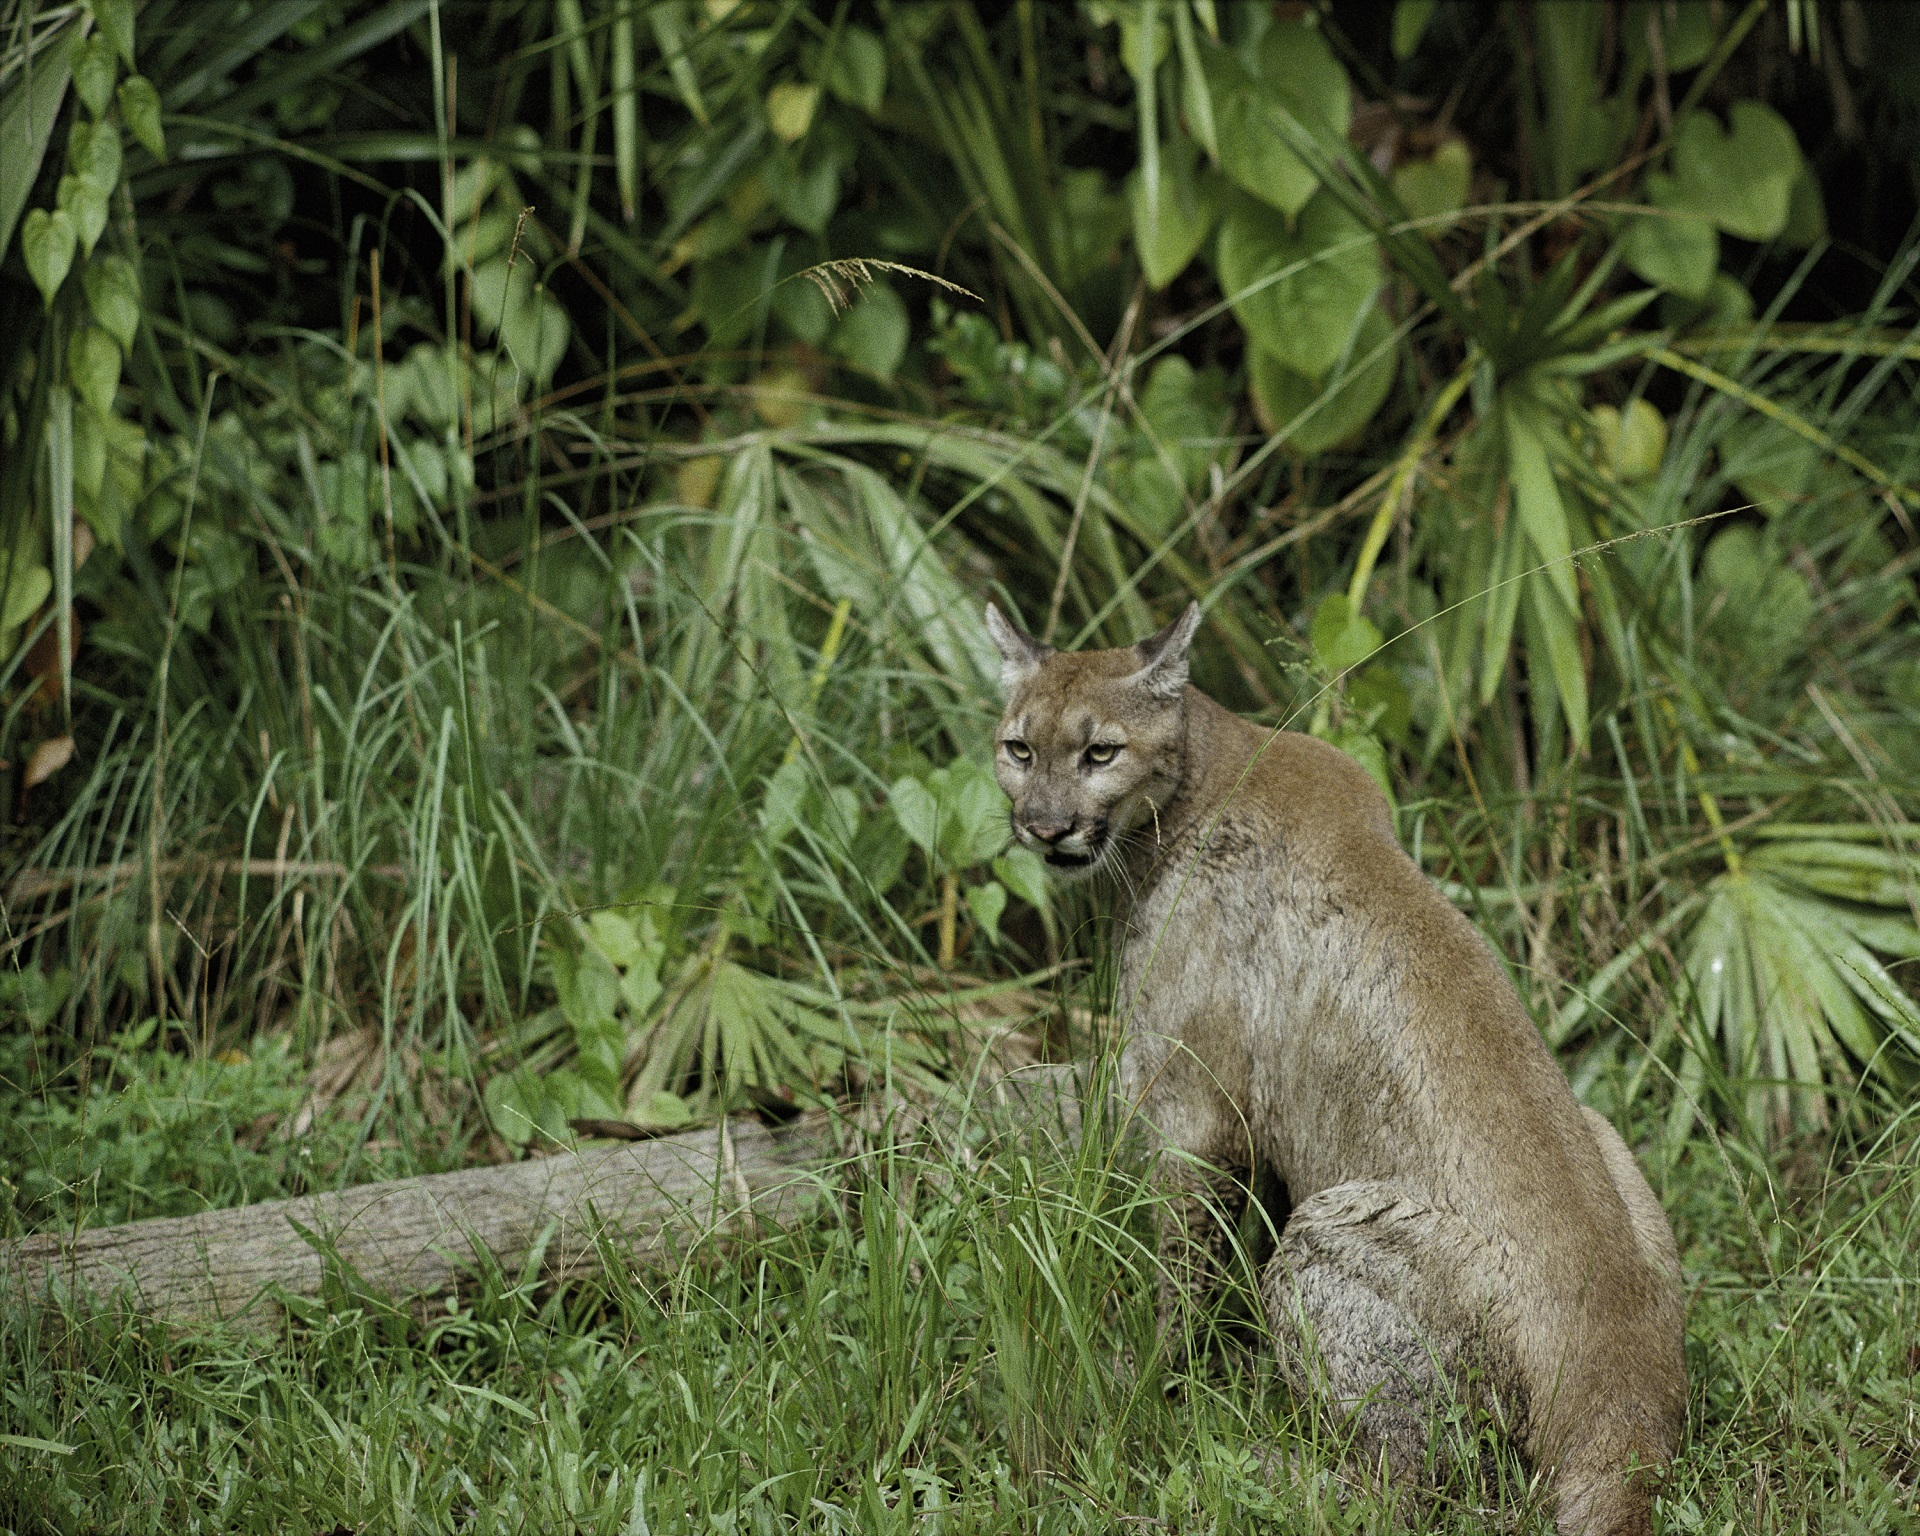 Puma in the Jungle, Animal, Cat, Forest, Jungle, HQ Photo